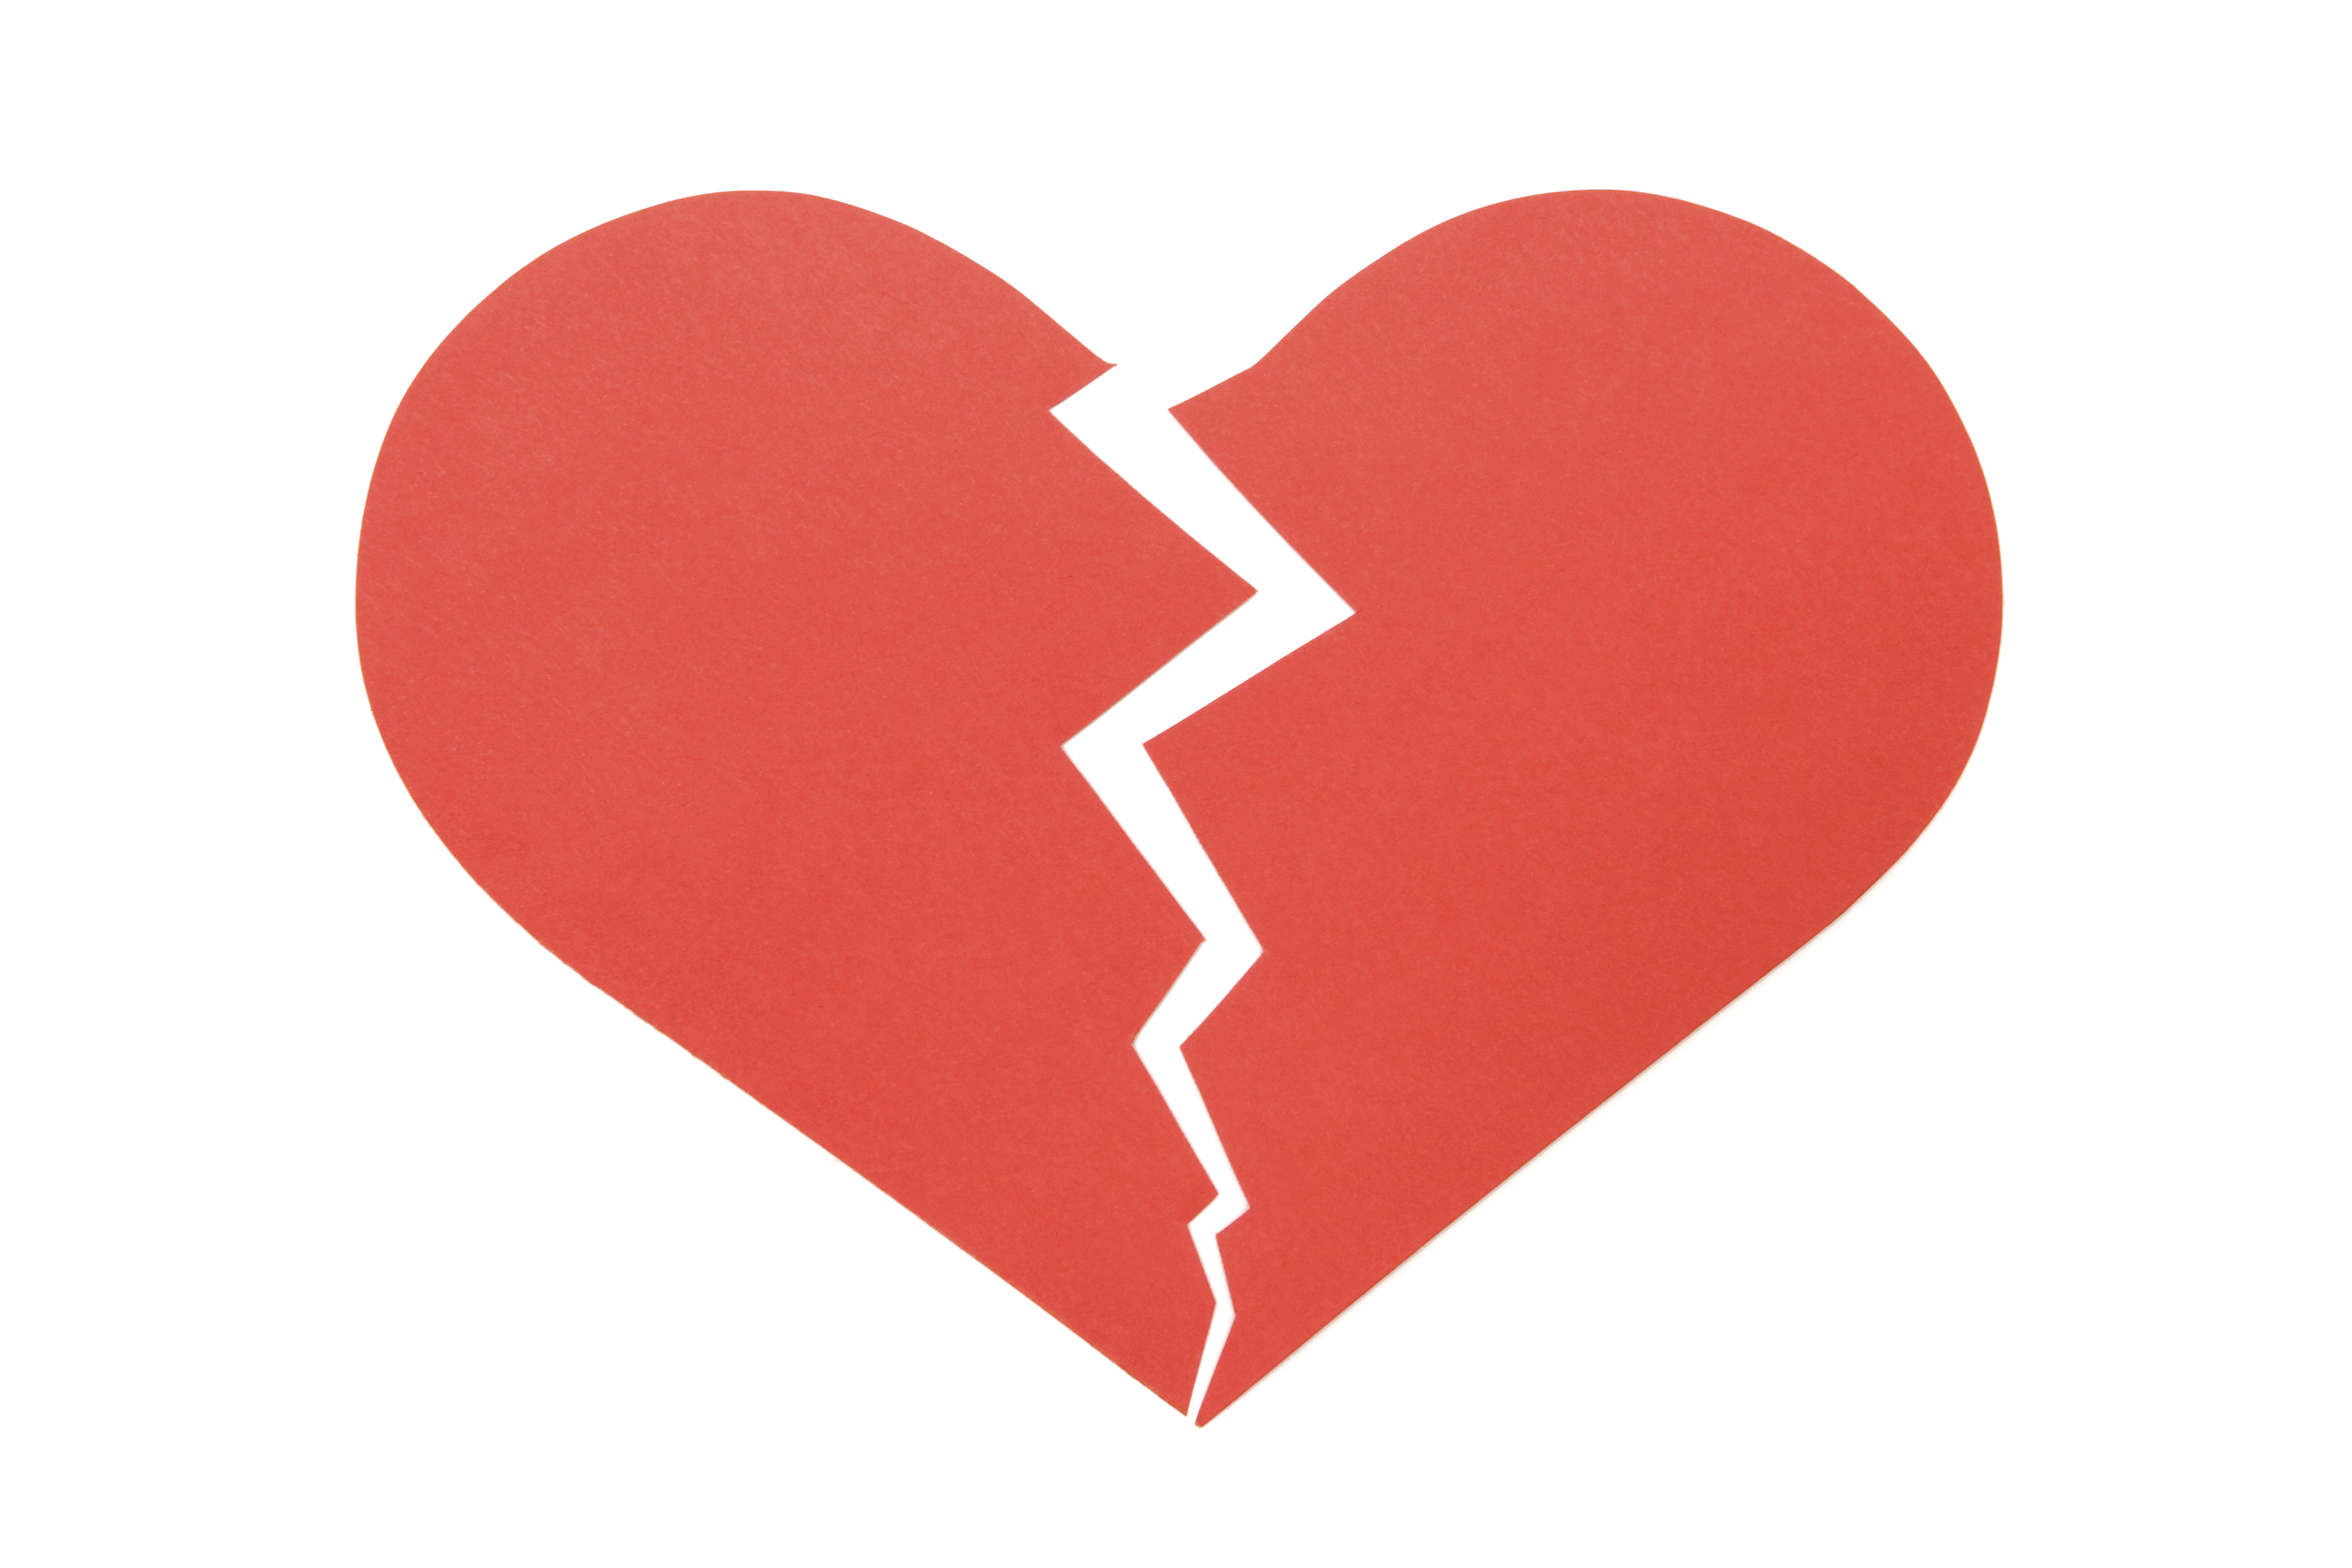 An image of a heart ripped in two